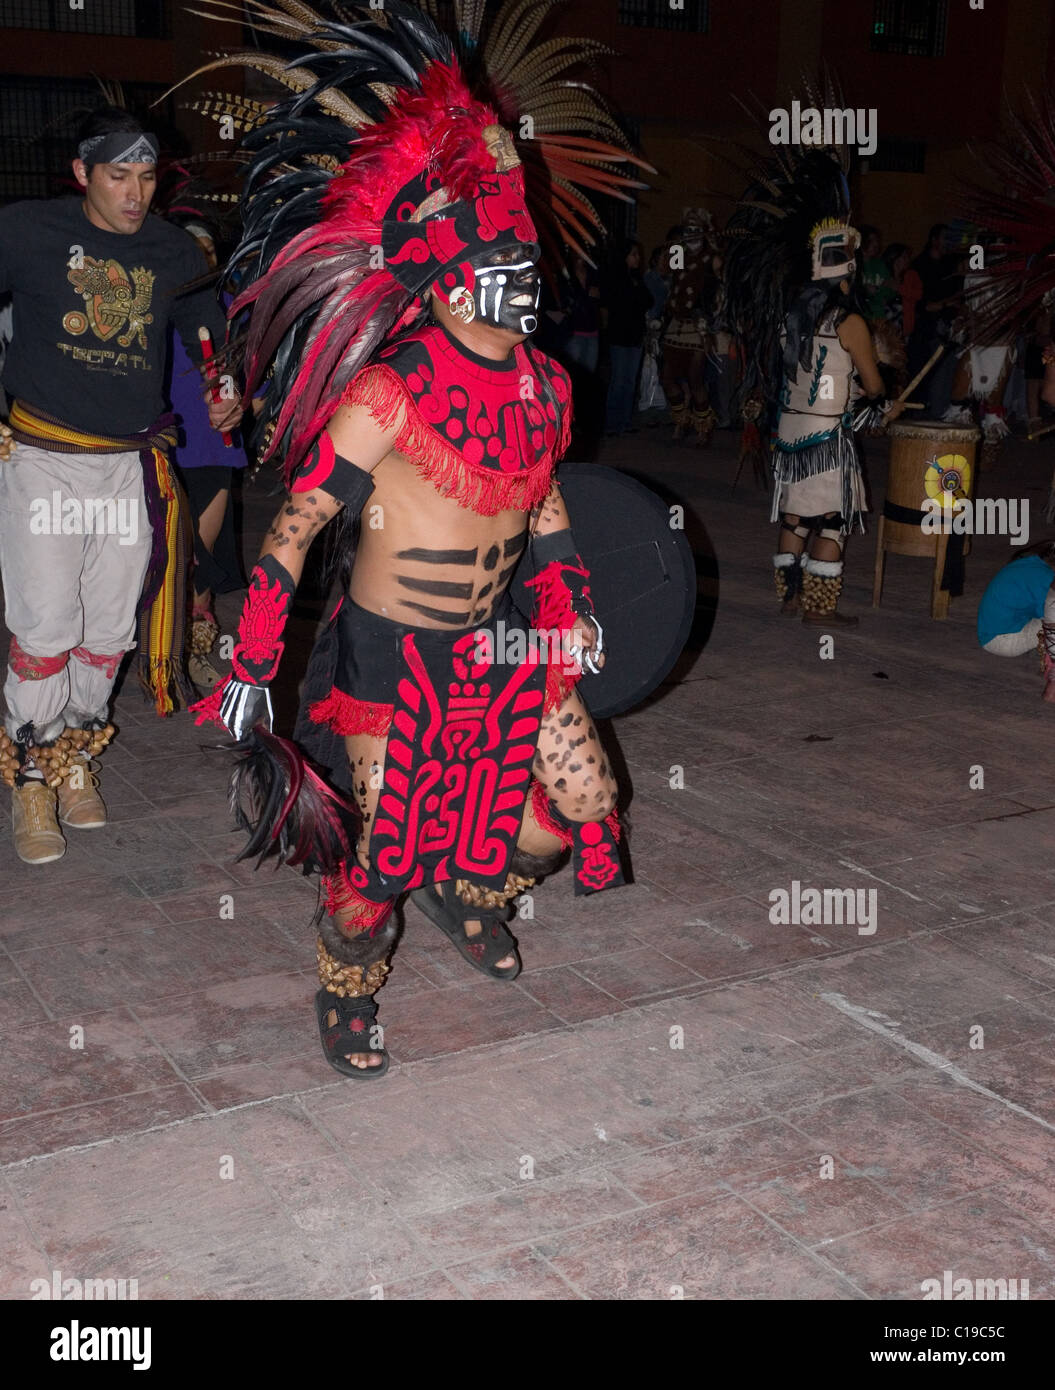 Man dressed as an Aztec warrior preforming a dance on the day of the dead in Xochimilco, Mexico Stock Photo